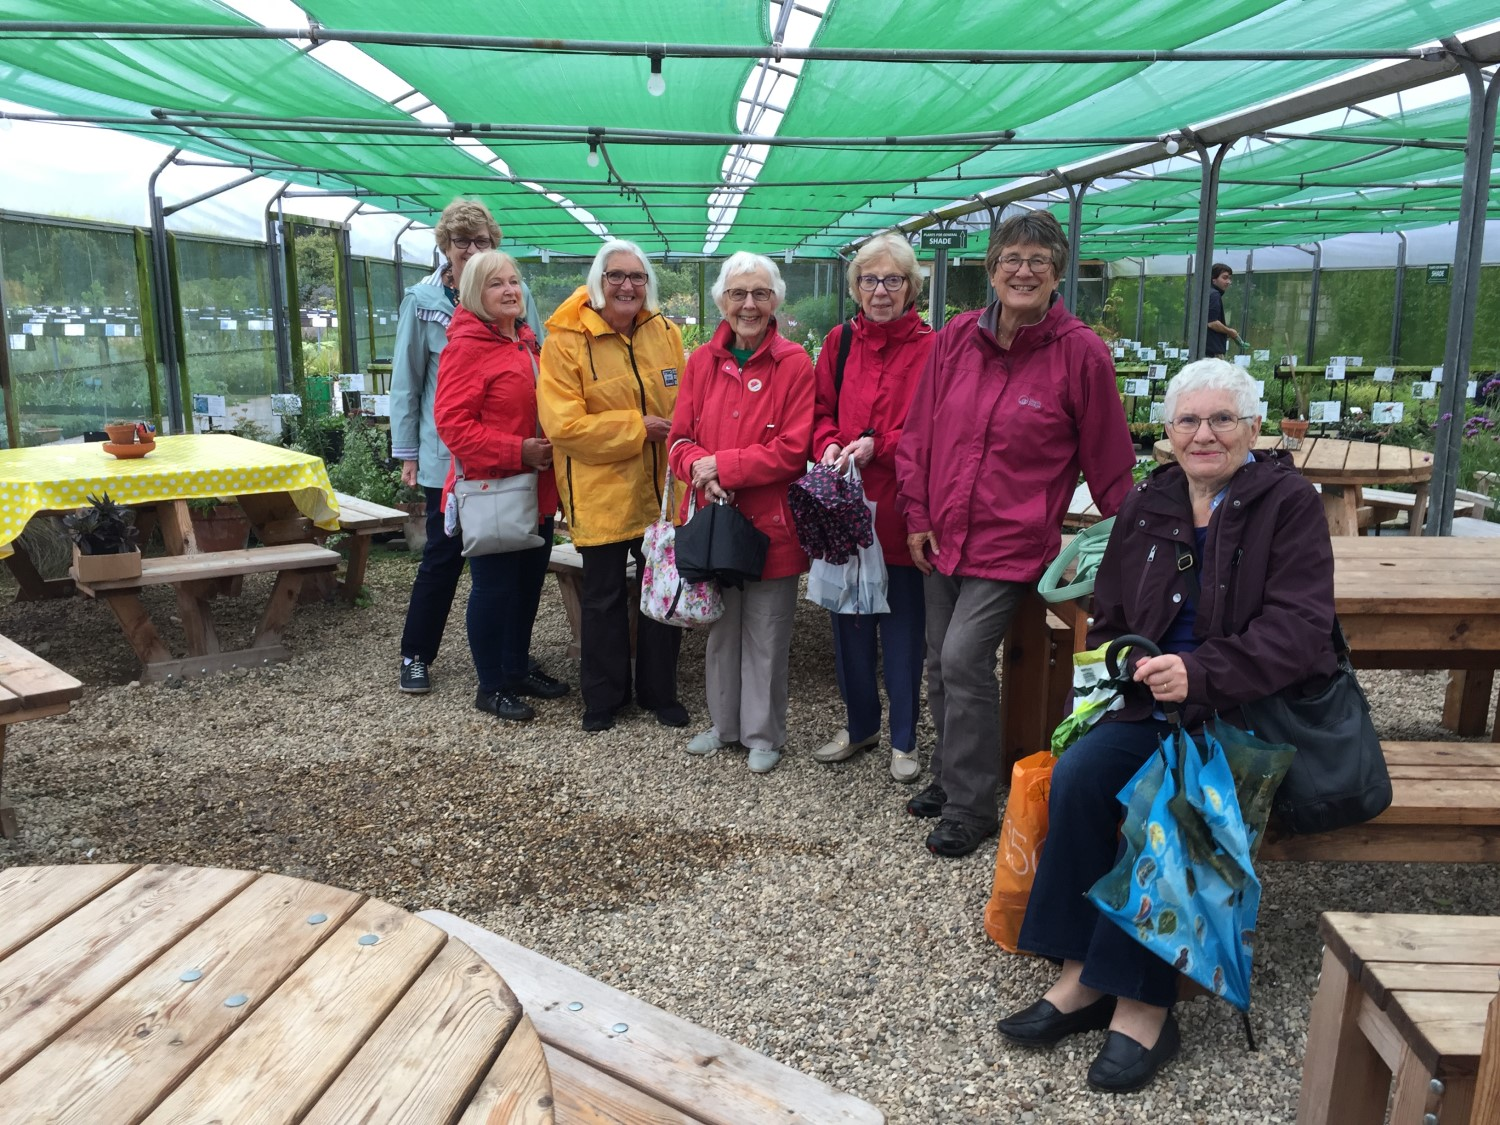 Staying Dry at Beth Chatto Gardens